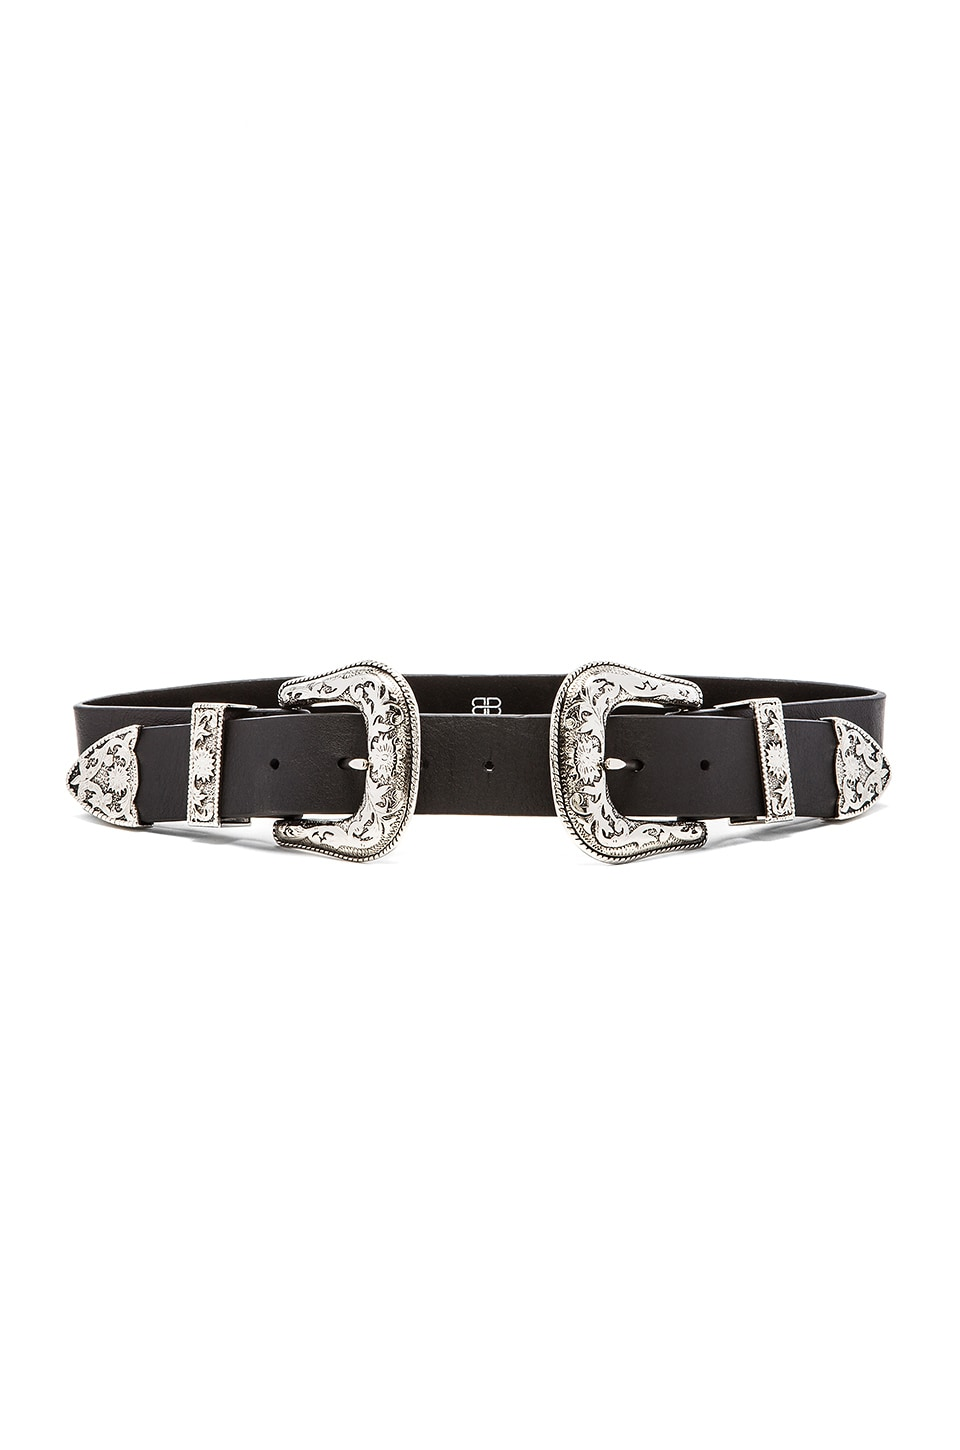 B-Low the Belt Bri Bri Waist Belt in Black & Silver